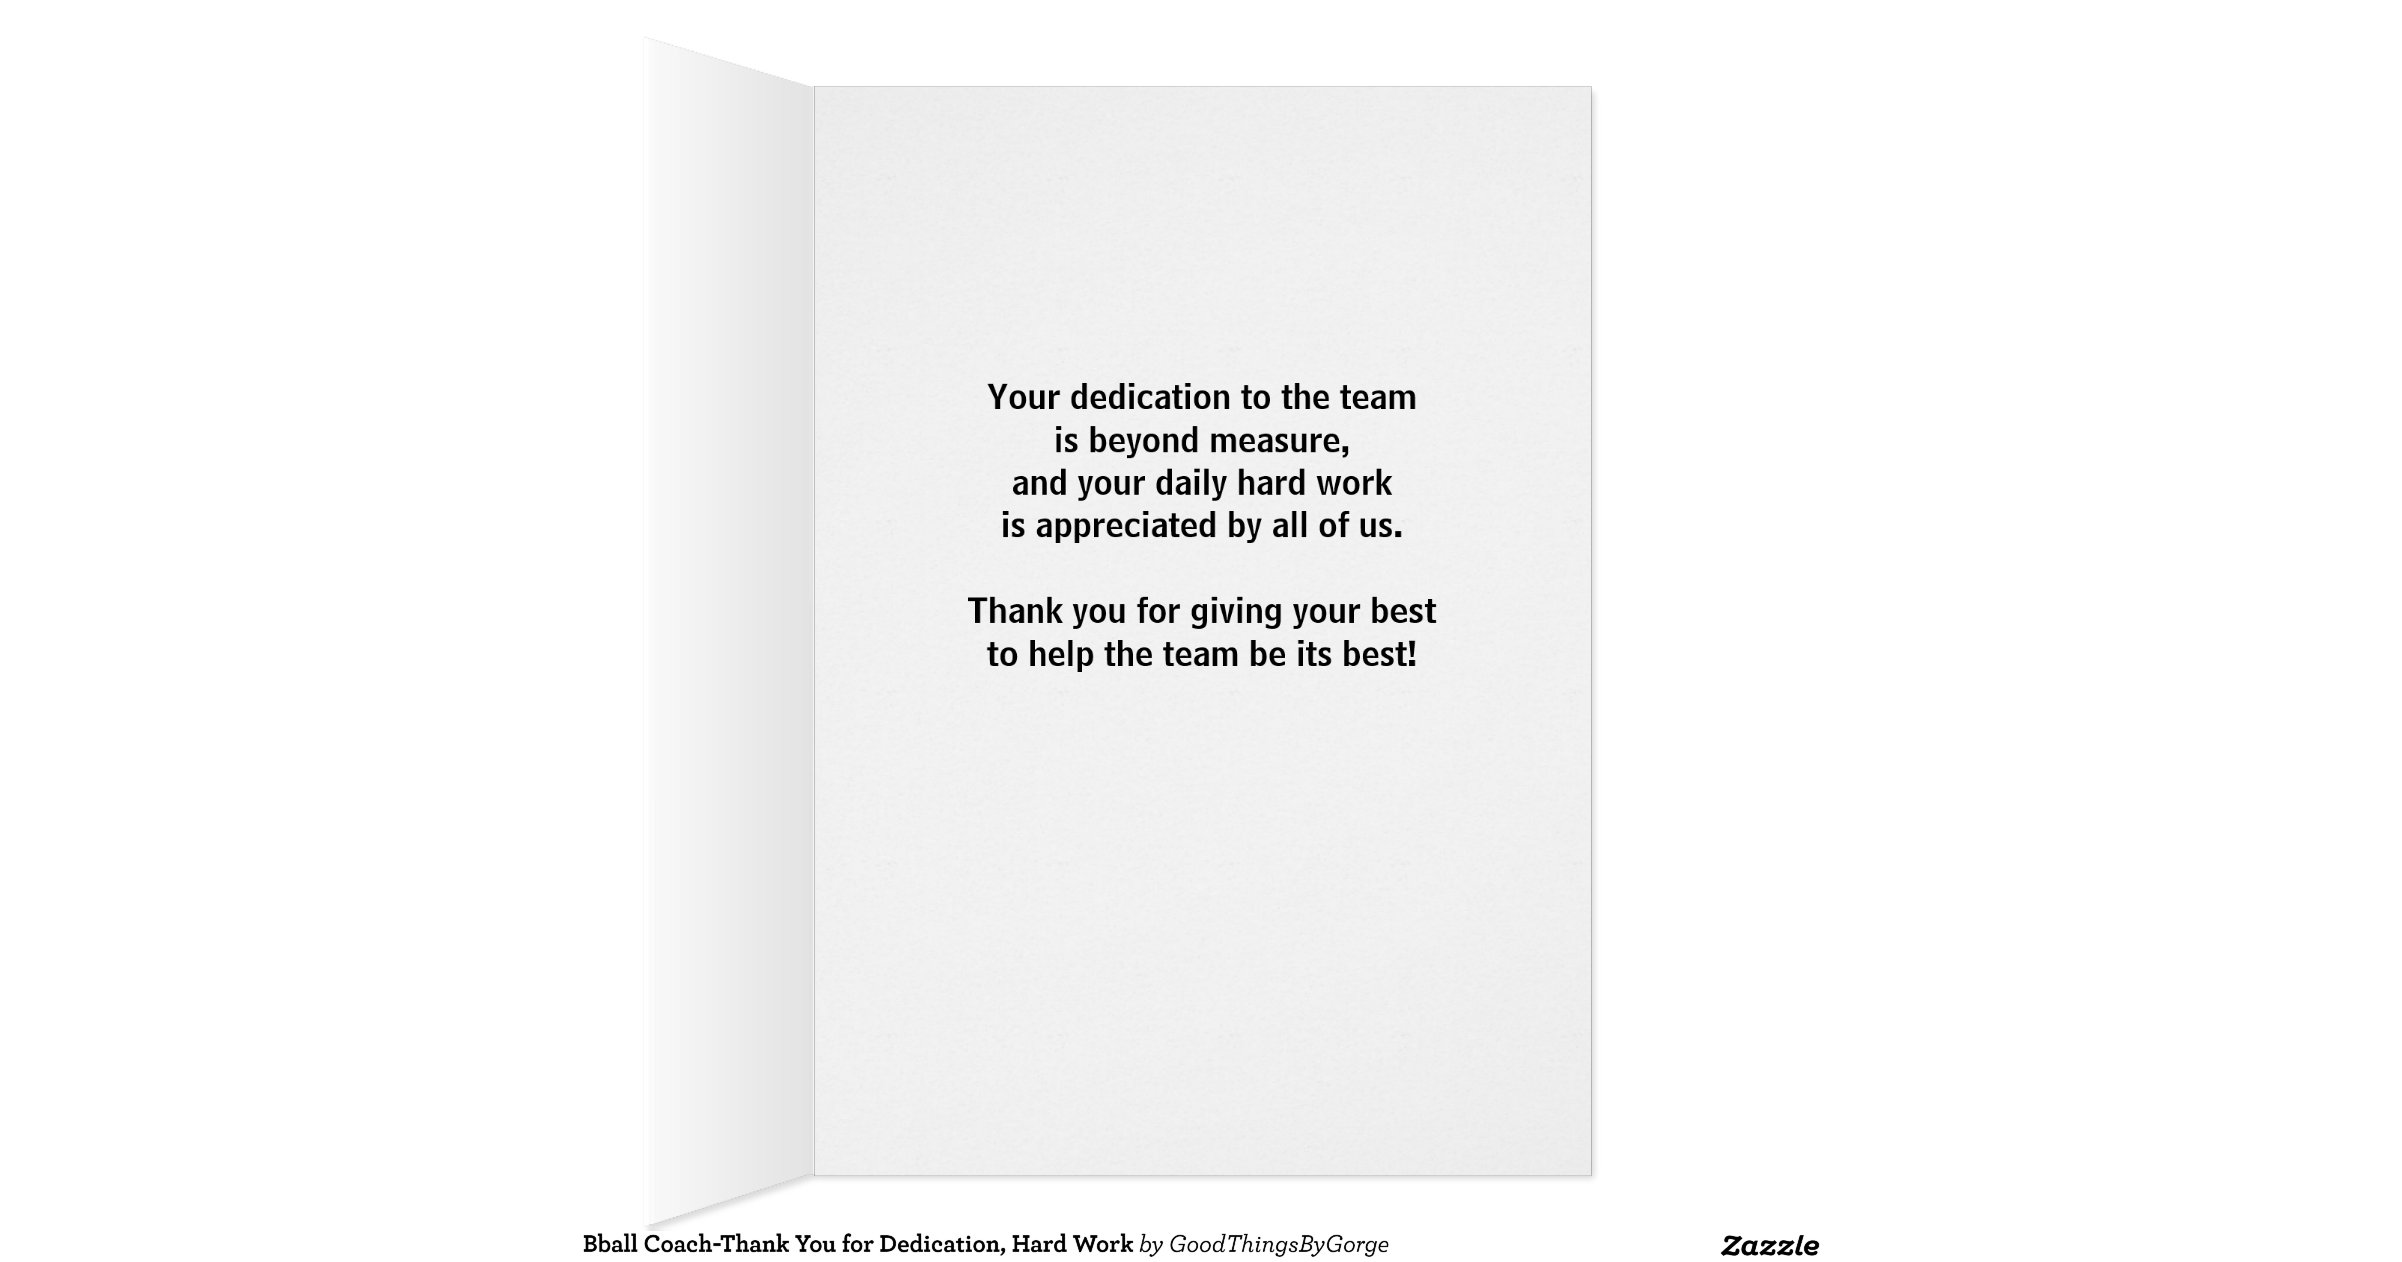 Bball Coach-Thank You for Dedication, Hard Work Greeting